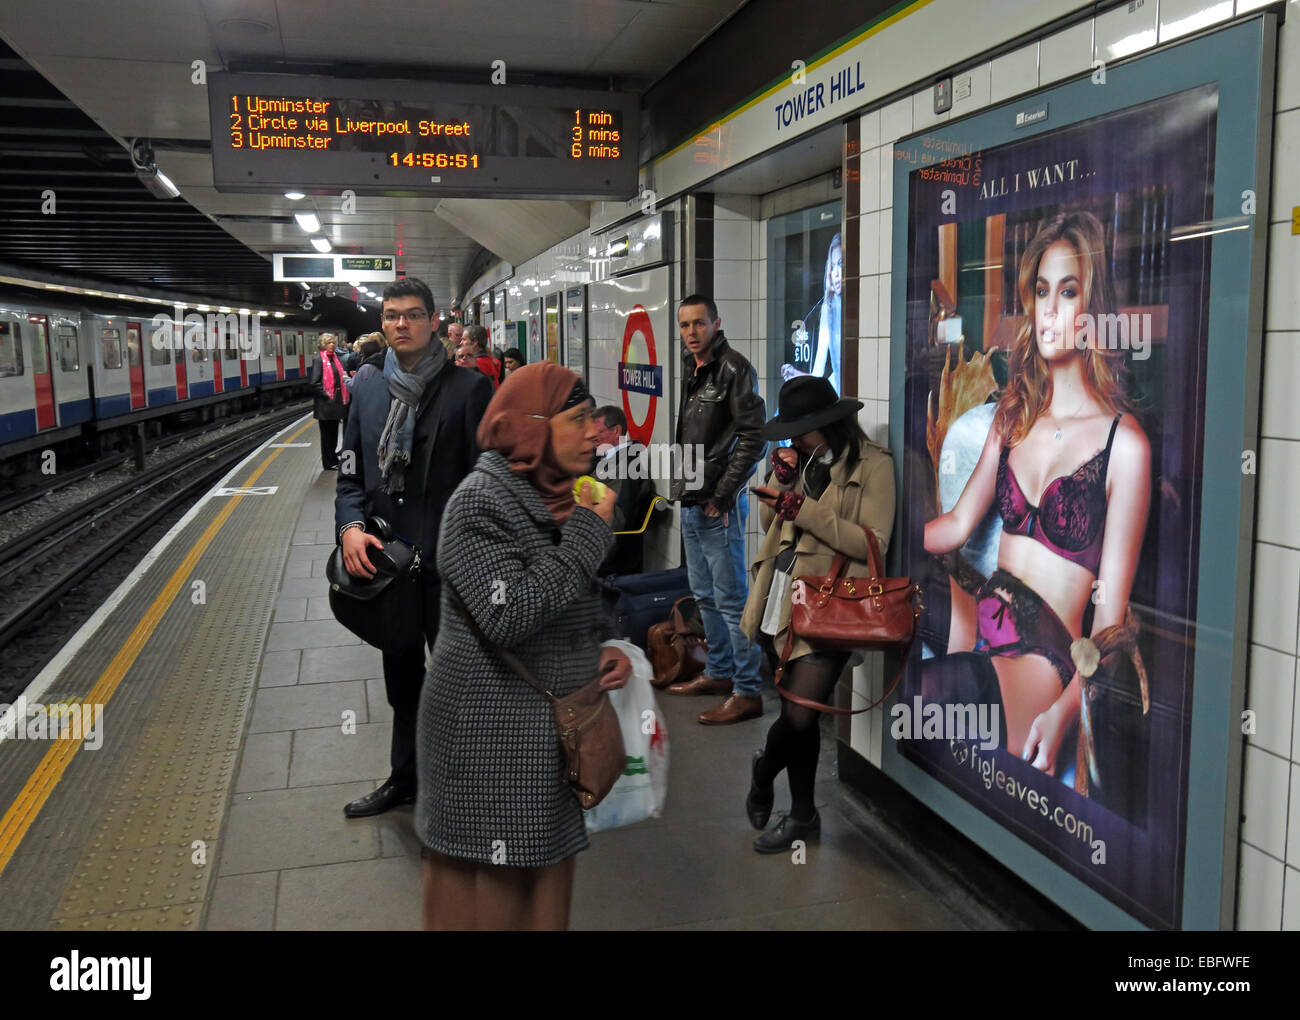 'All I want' poster for lingerie at Moorgate, London City Underground platform, England, UK Stock Photo